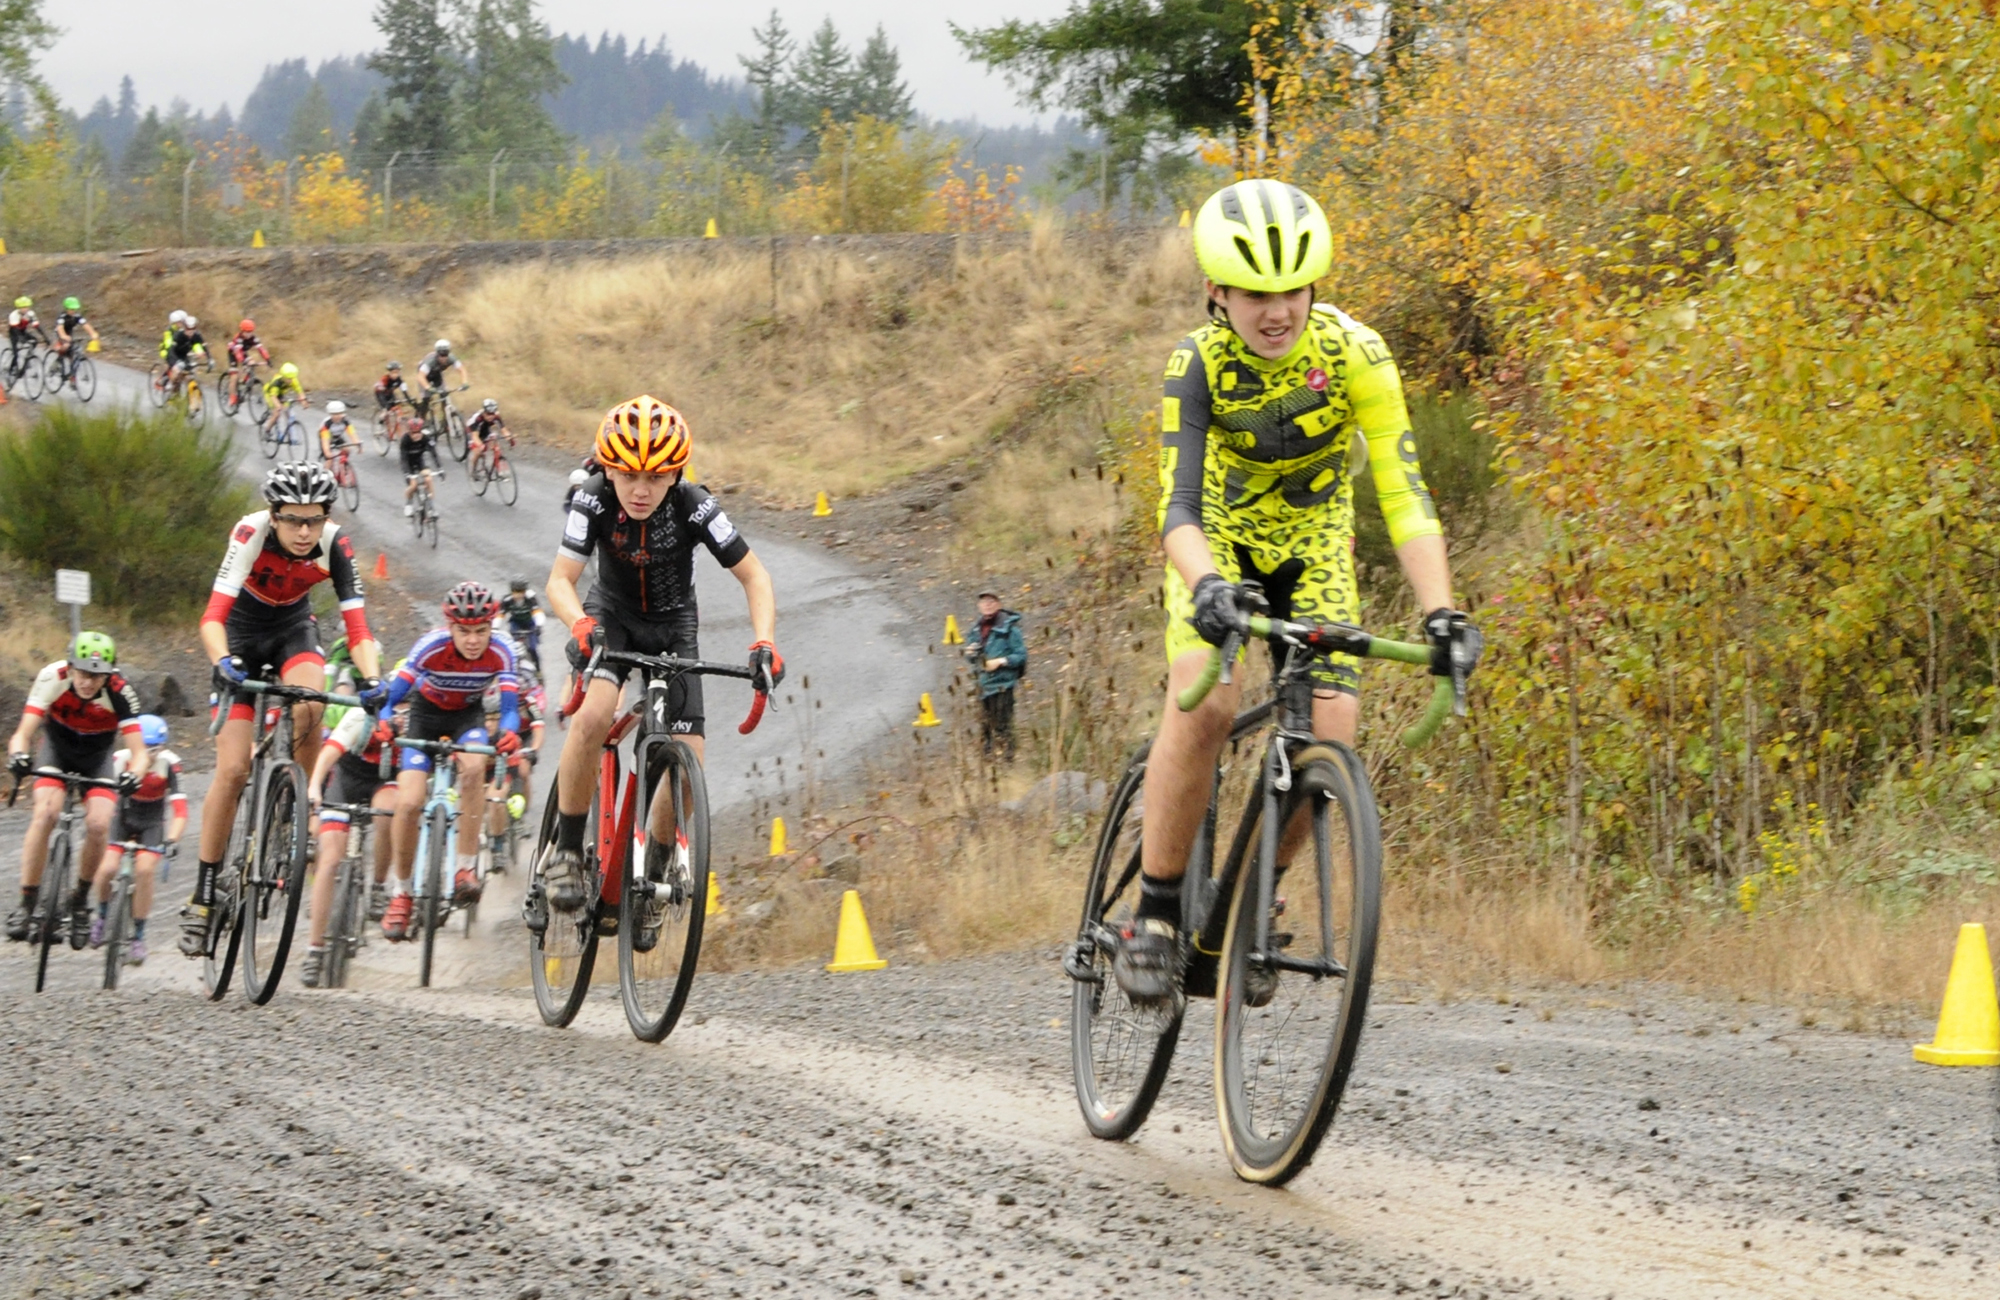 SellwoodCycle_CCBP_09